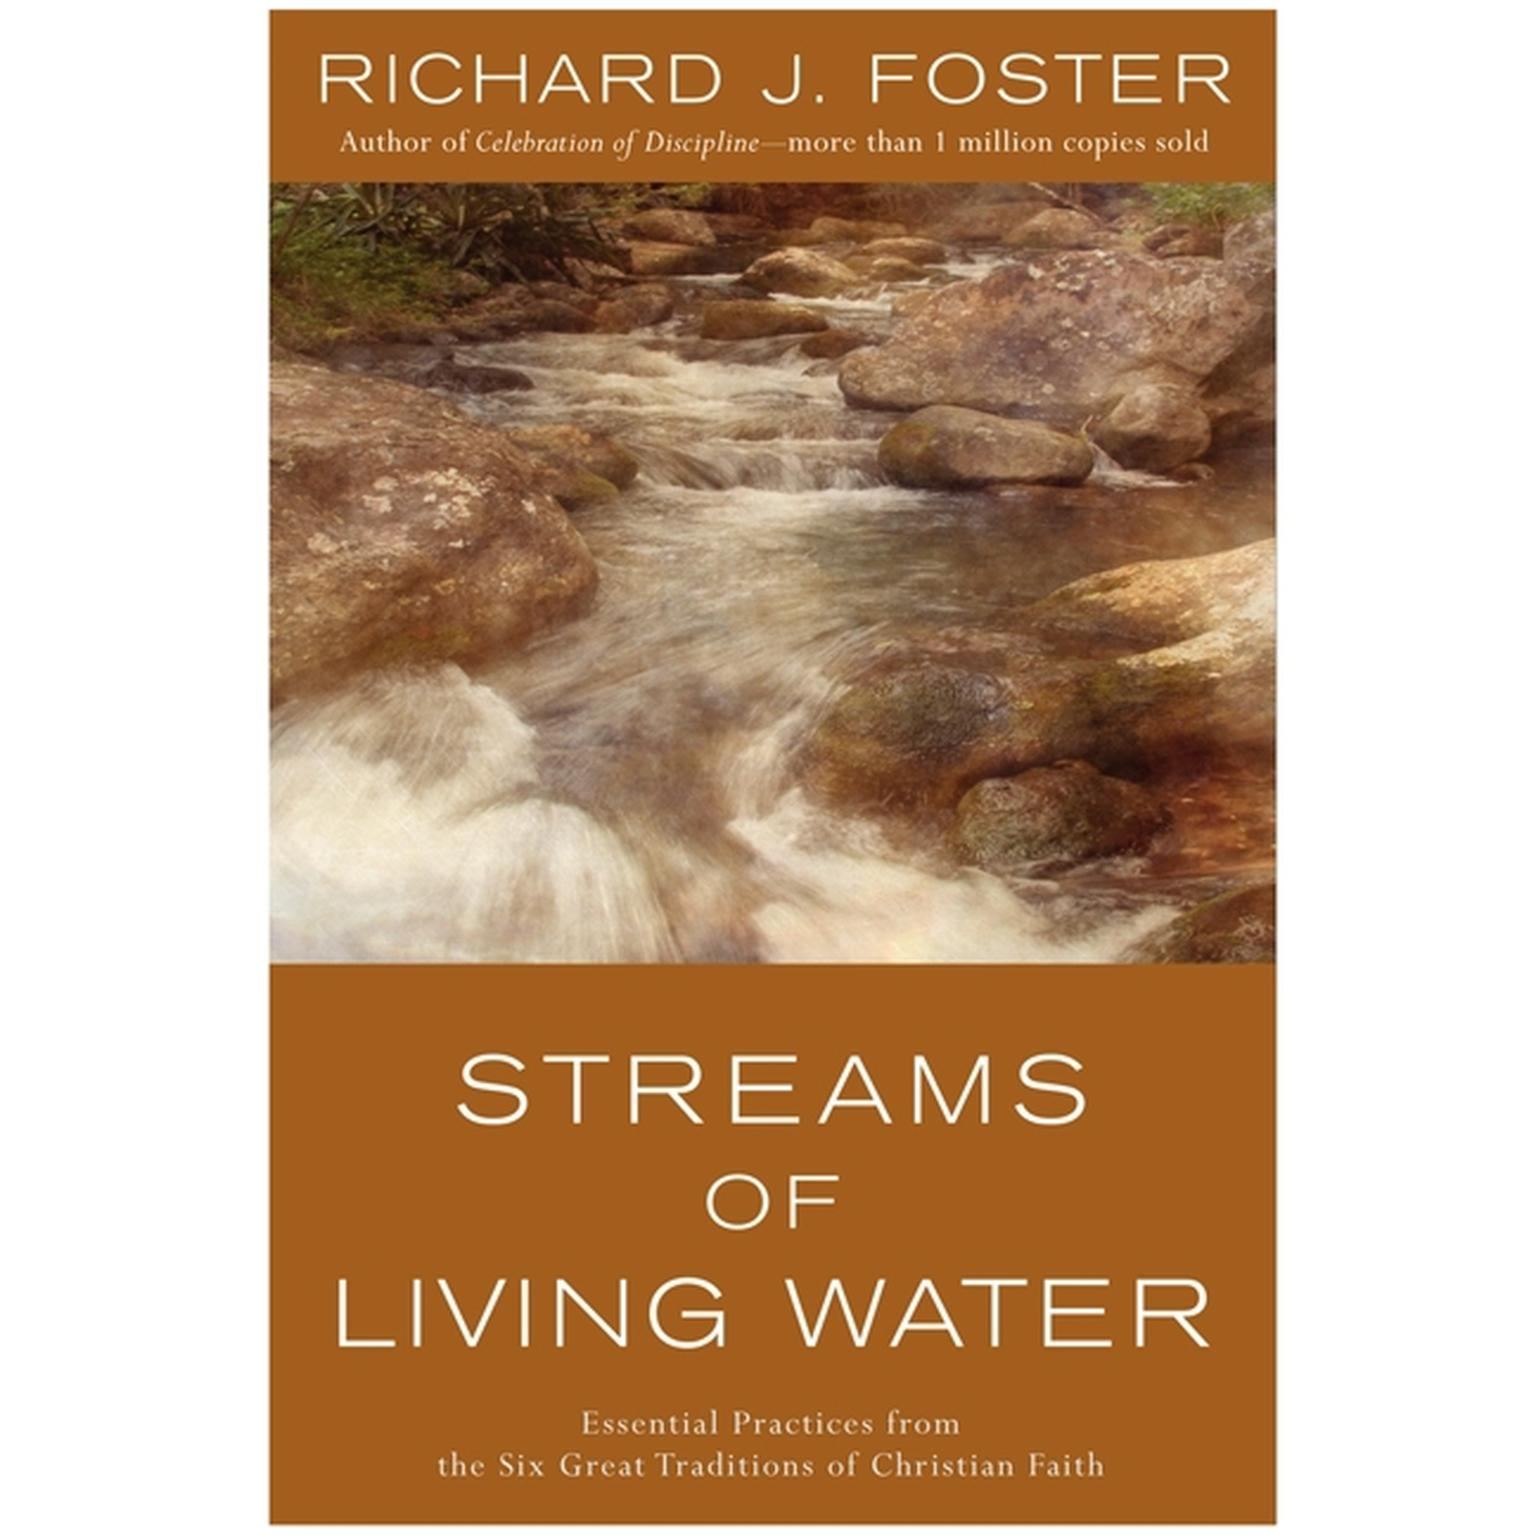 Printable Streams of Living Water: Essential Practices from the Six Great Traditions of Christian Faith Audiobook Cover Art